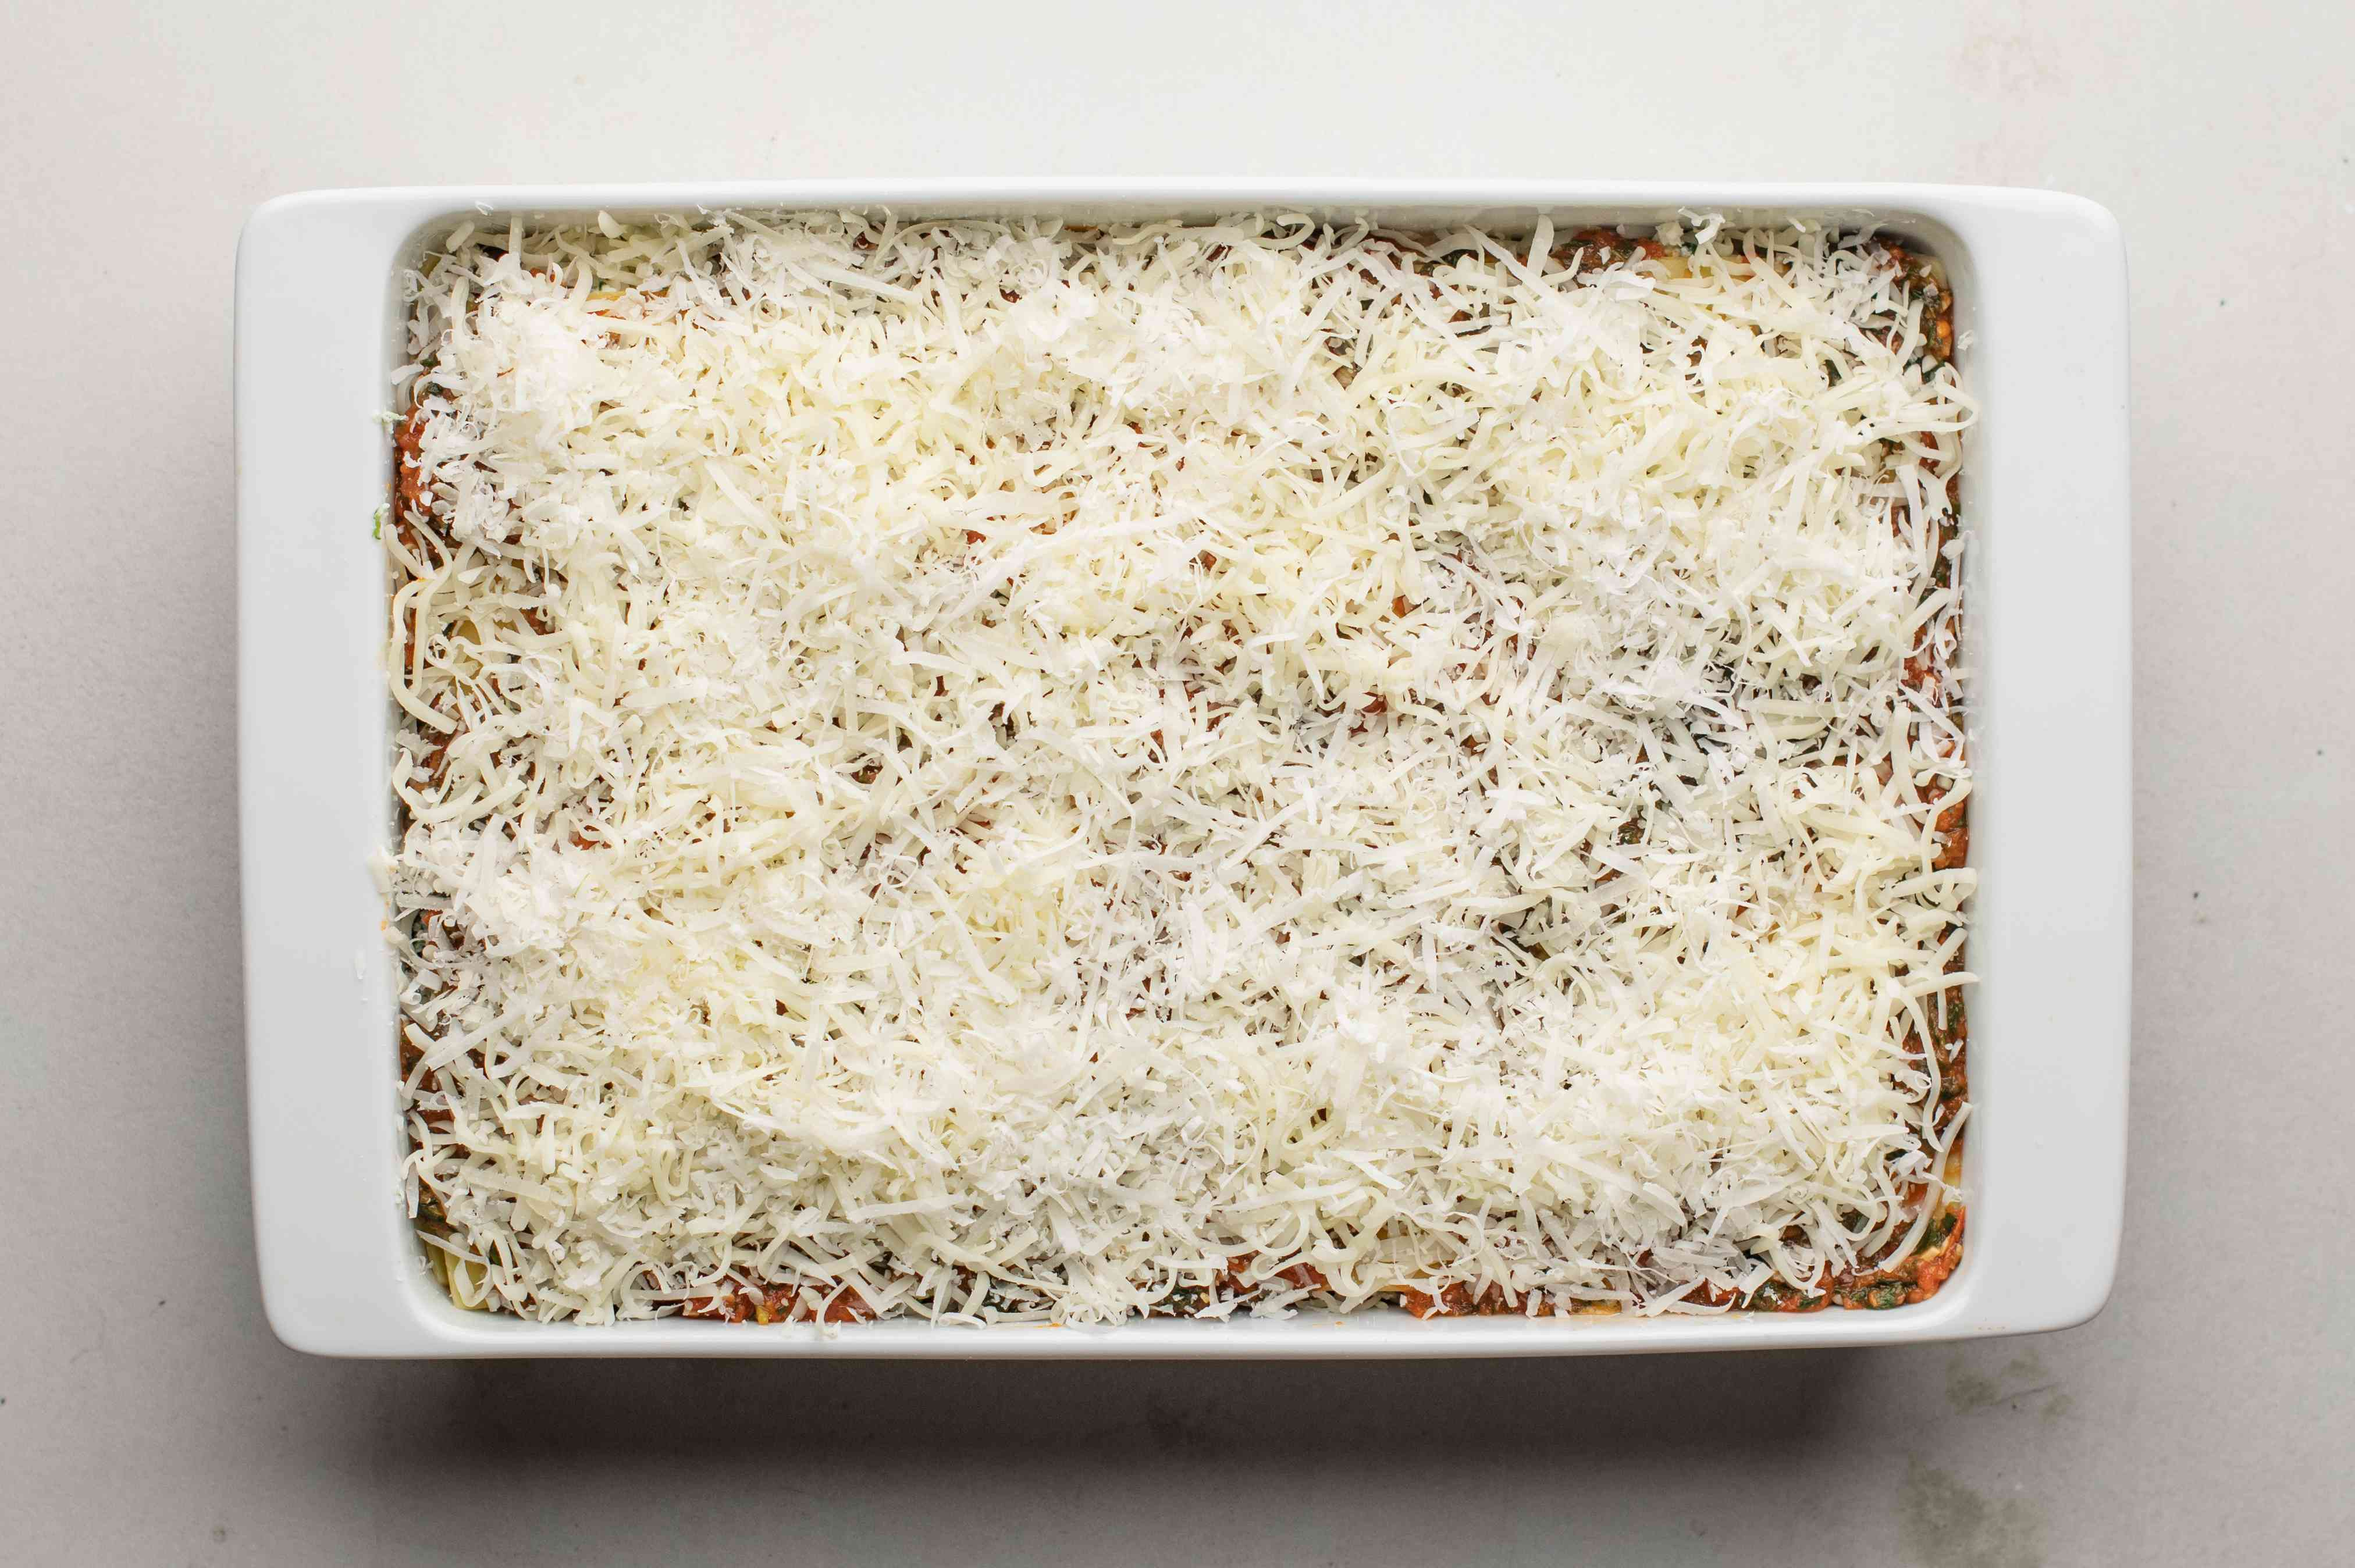 Top with another layer of noodles and cheese for spinach lasagna